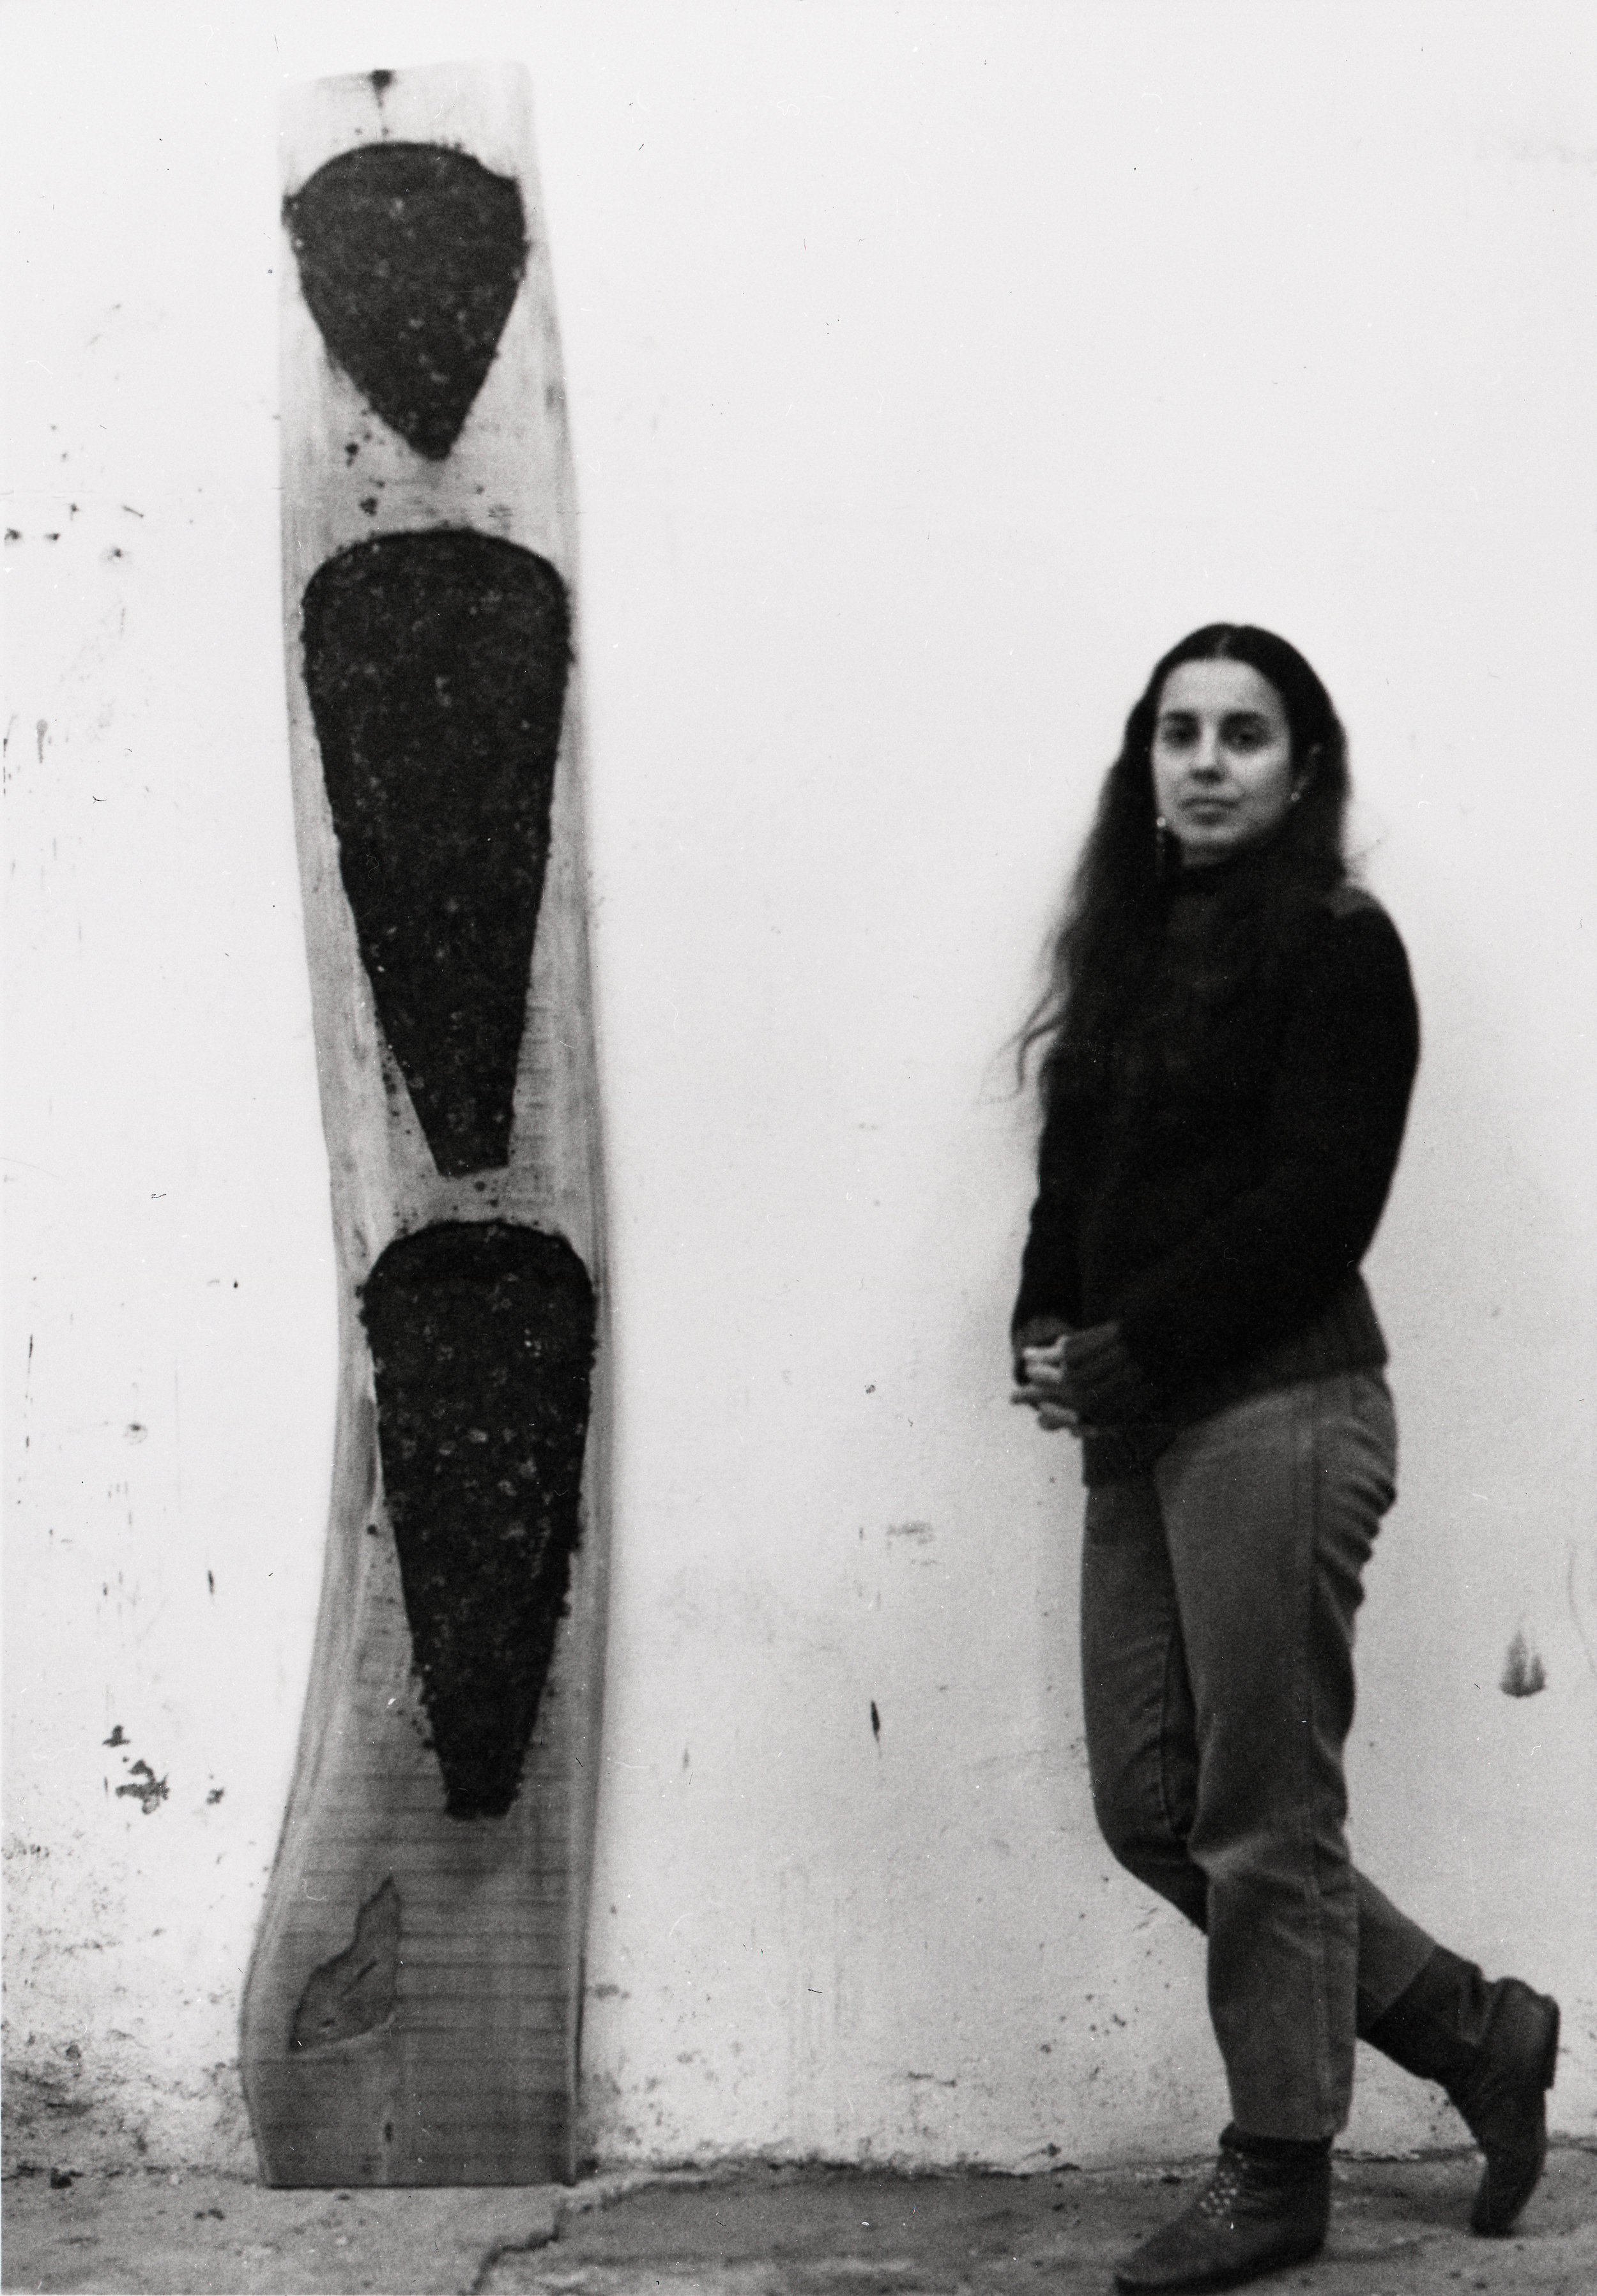 © The Estate of Ana Mendieta Collection, LLC, Ana Mendieta with an Untitled Sculpture 1985